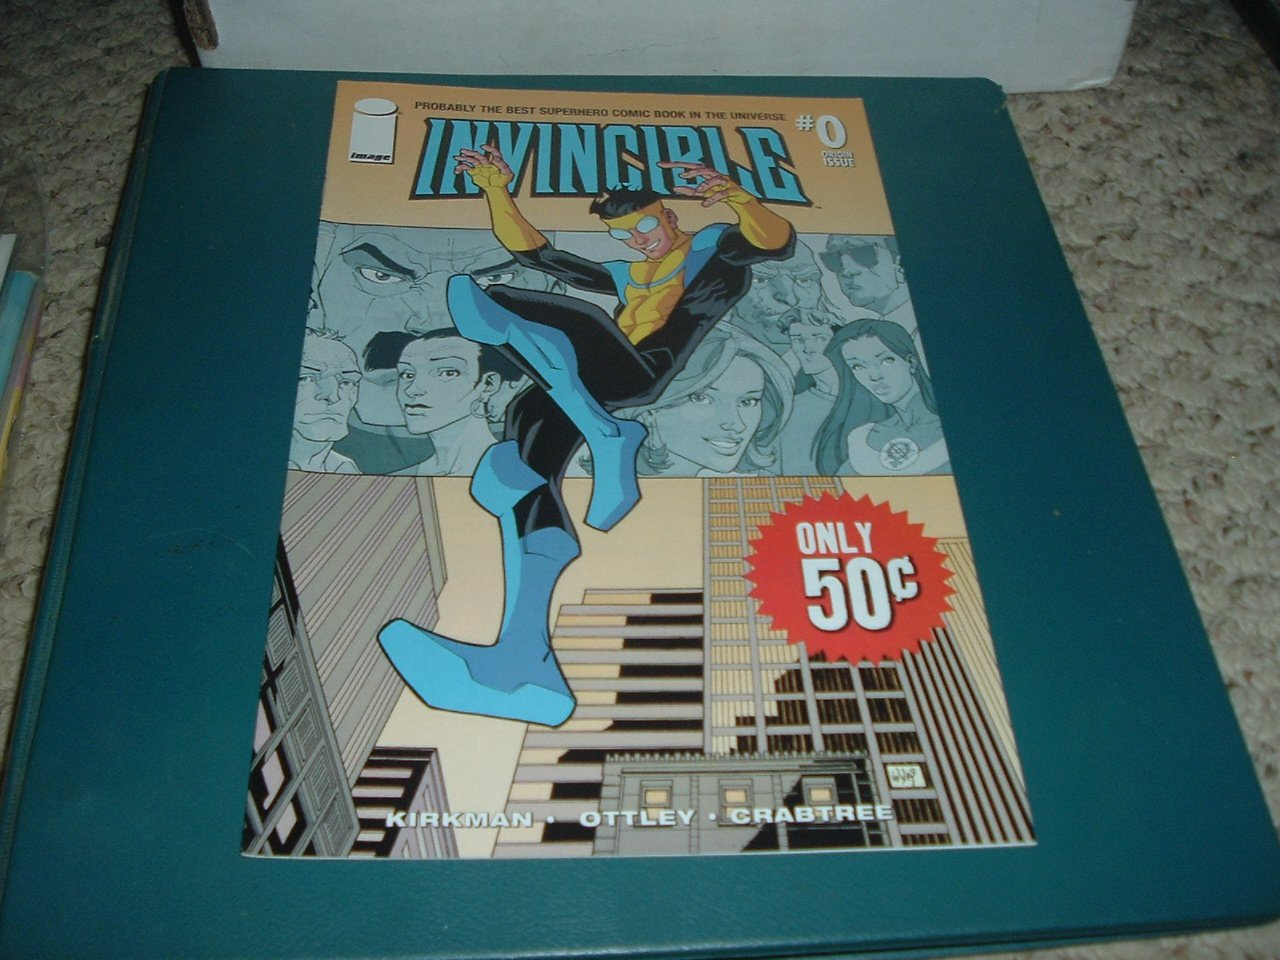 Invincible #0 (Image Comics, Kirkman, Ottley) Origin Issue comic for sale, SAVE $$ Shipping Special